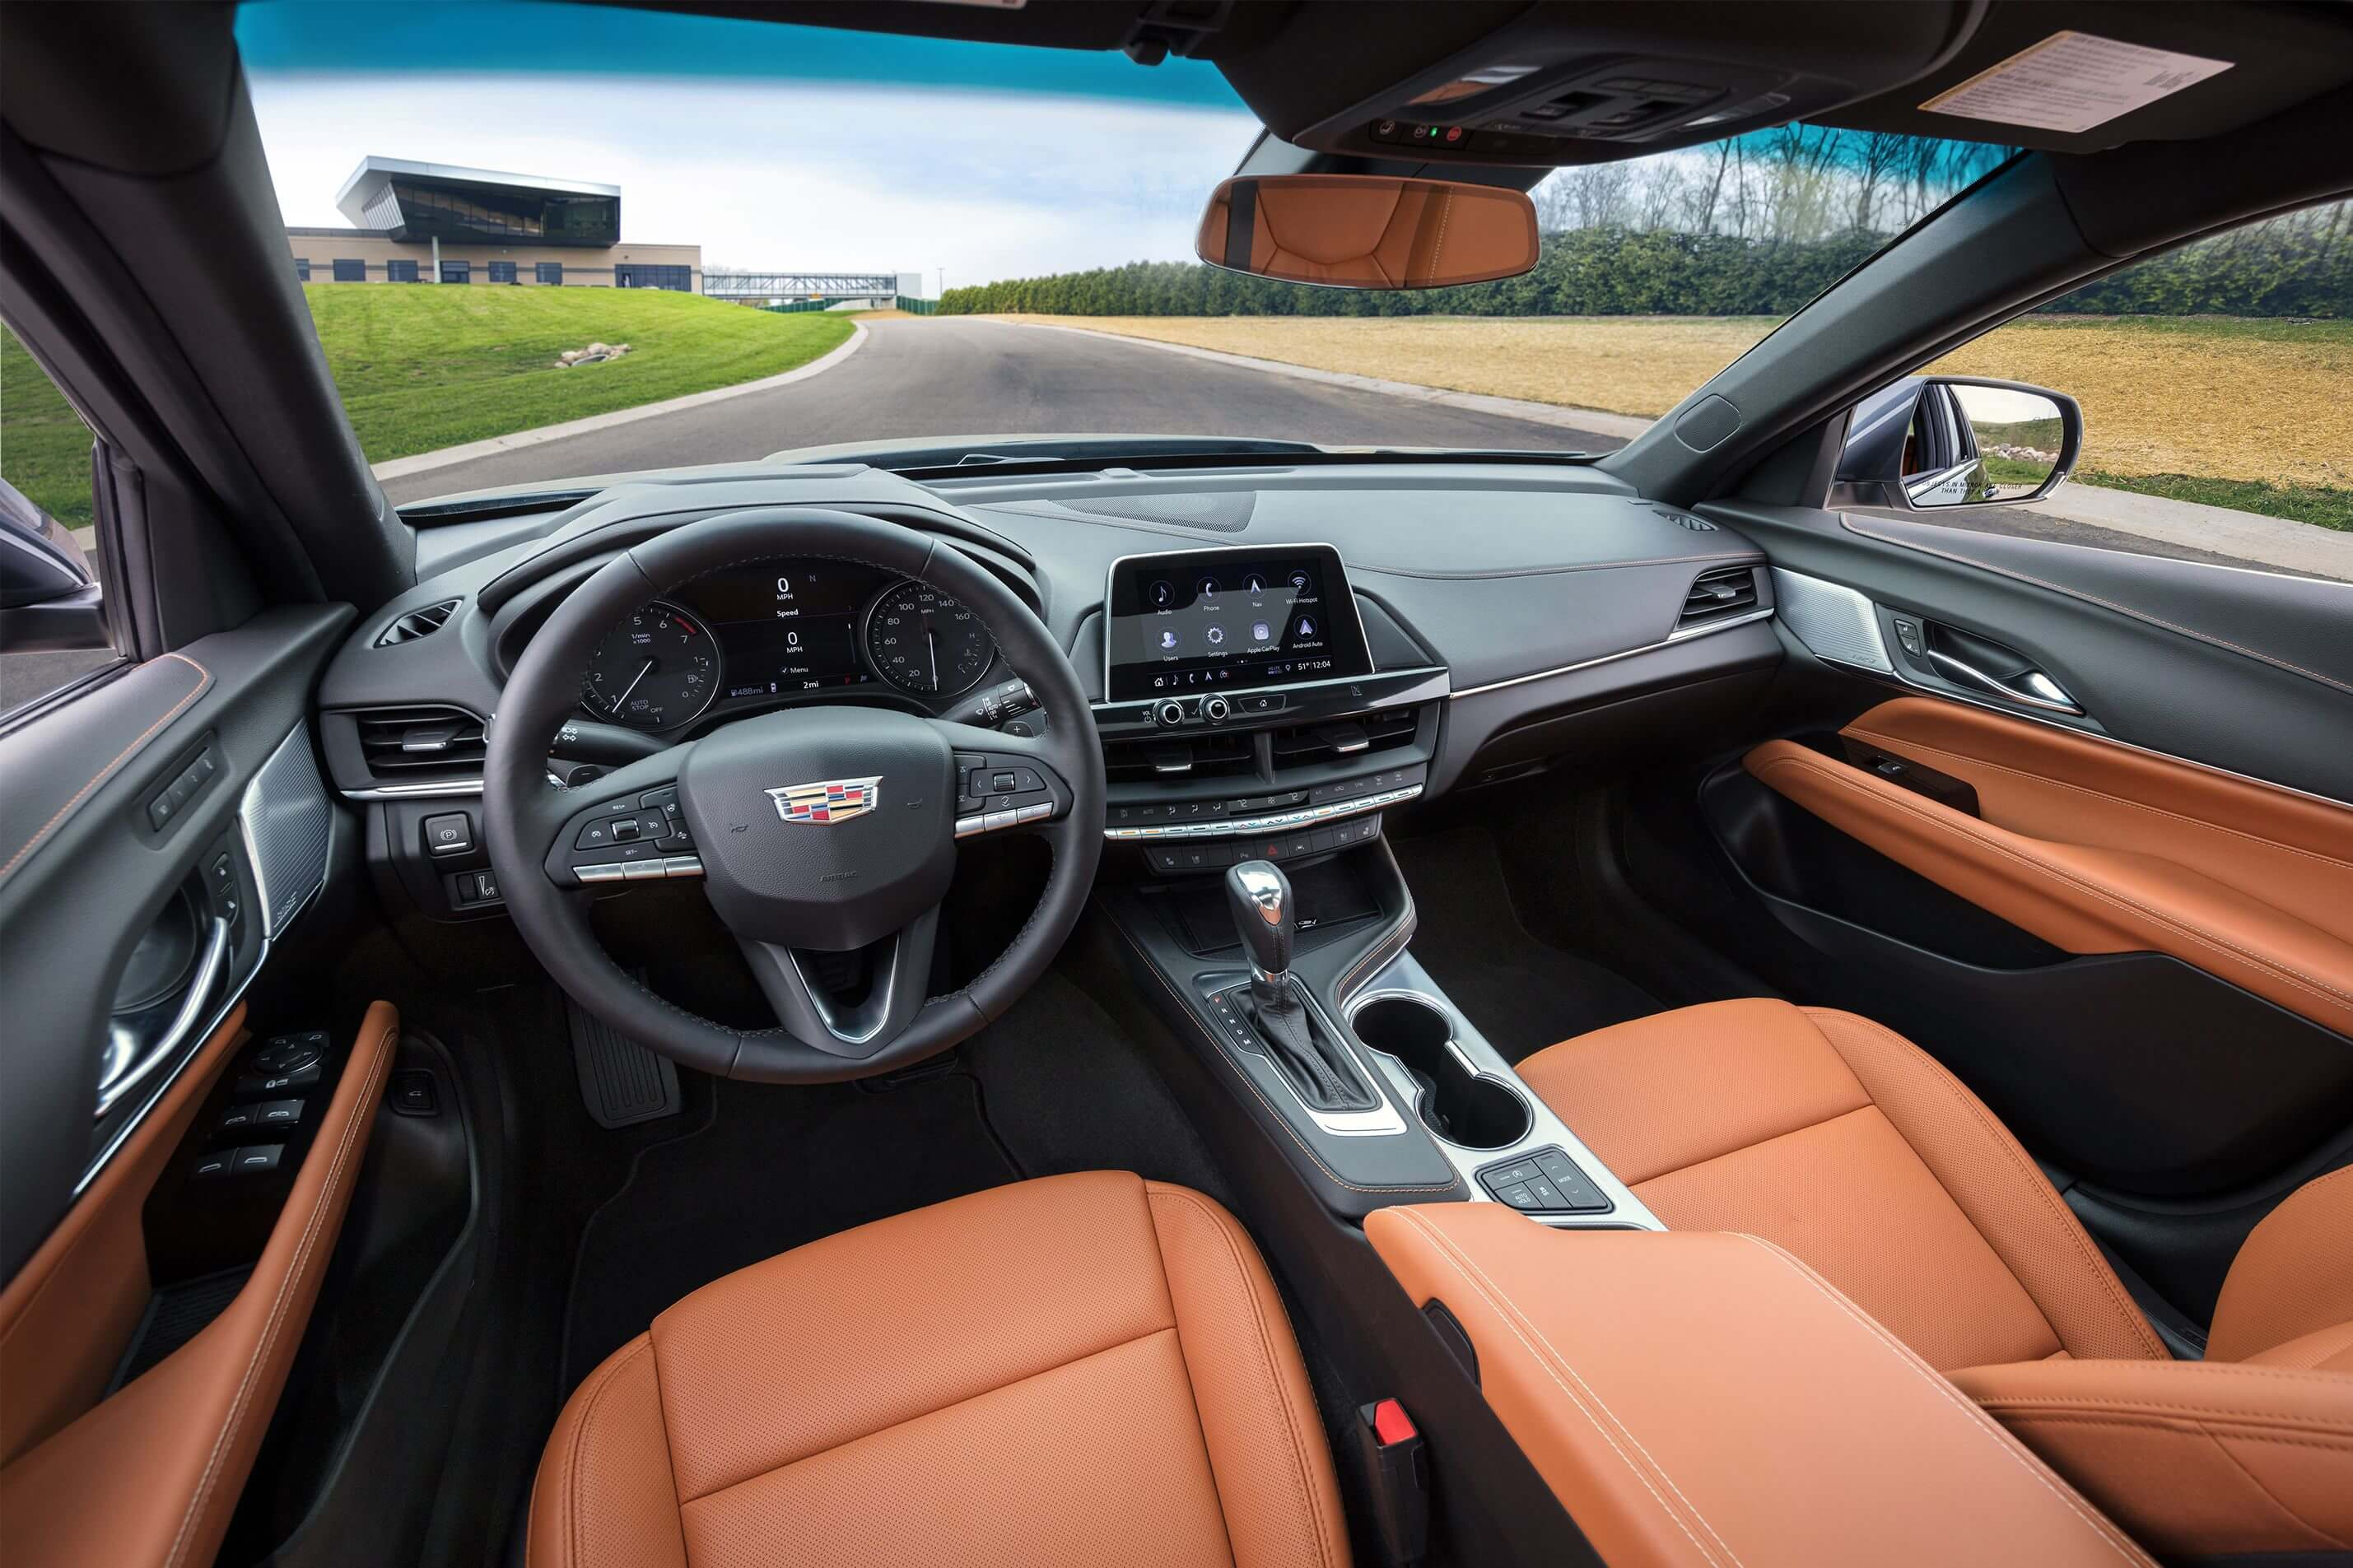 Gm S Super Cruise Hands Free Tech Makes Its Way To The